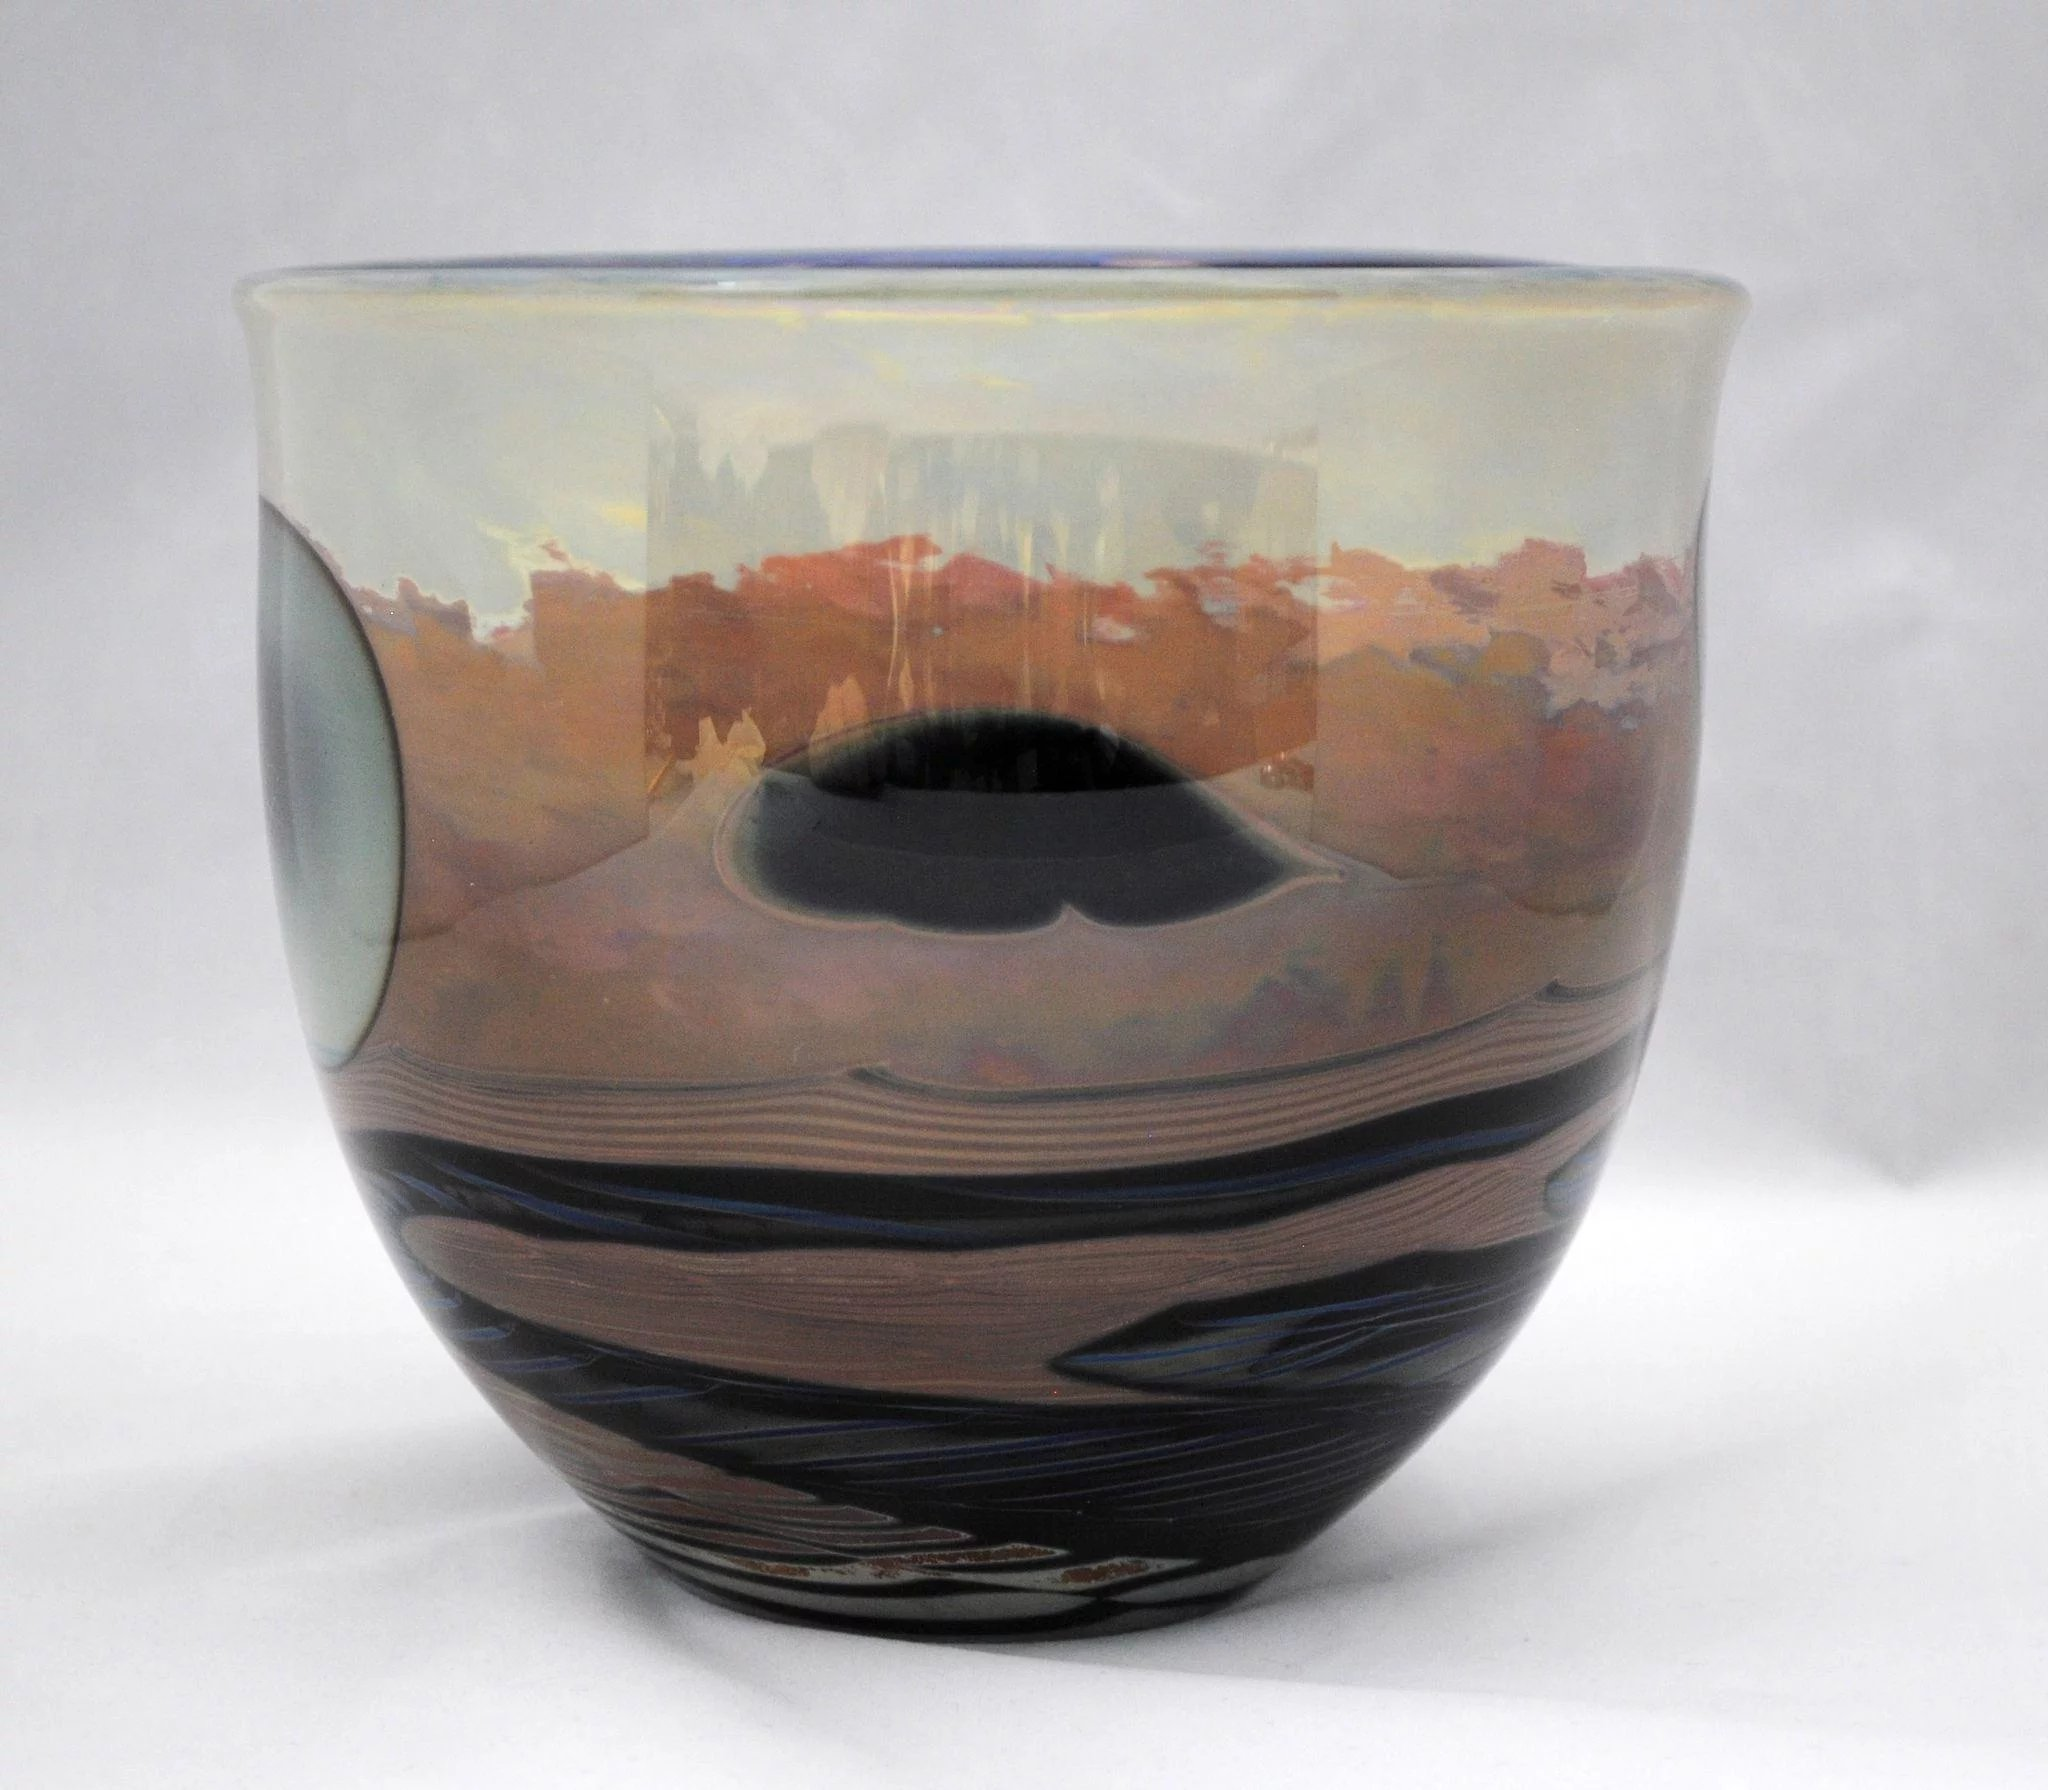 John lewis contemporary art glass moonscape planet bowl shape vase john lewis contemporary art glass moonscape planet bowl shape vase click to expand reviewsmspy